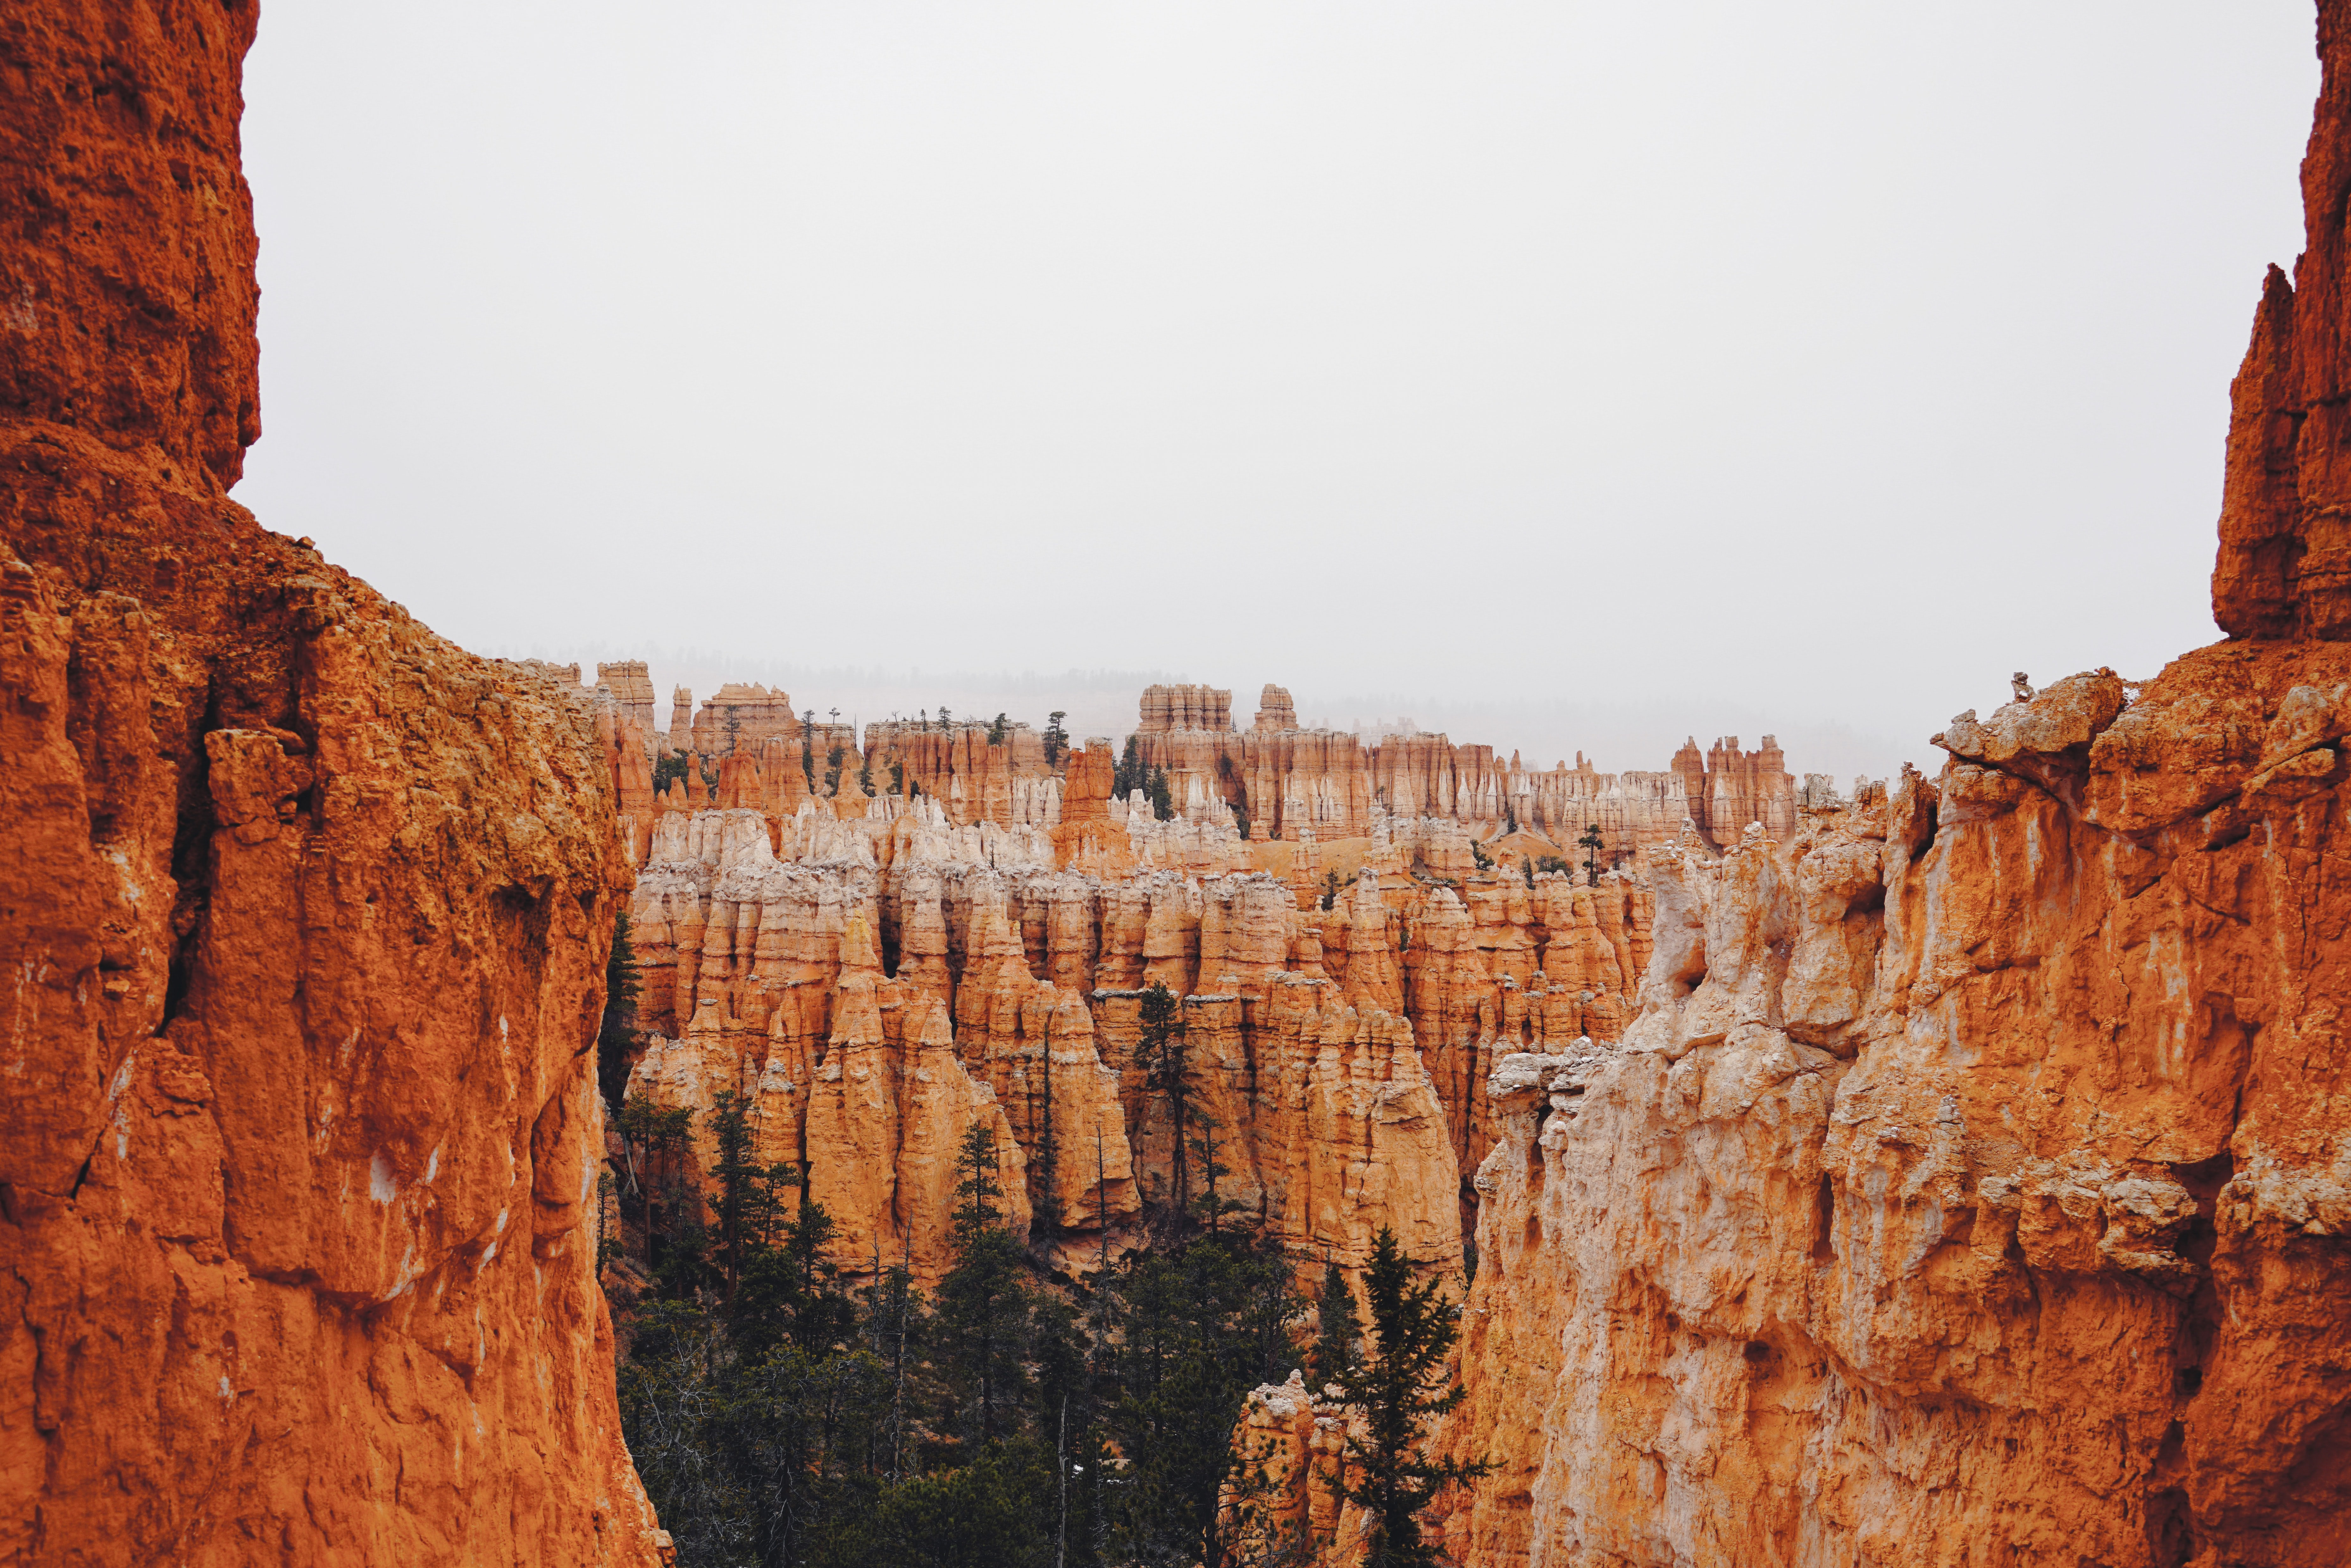 trees surrounded by rock formation